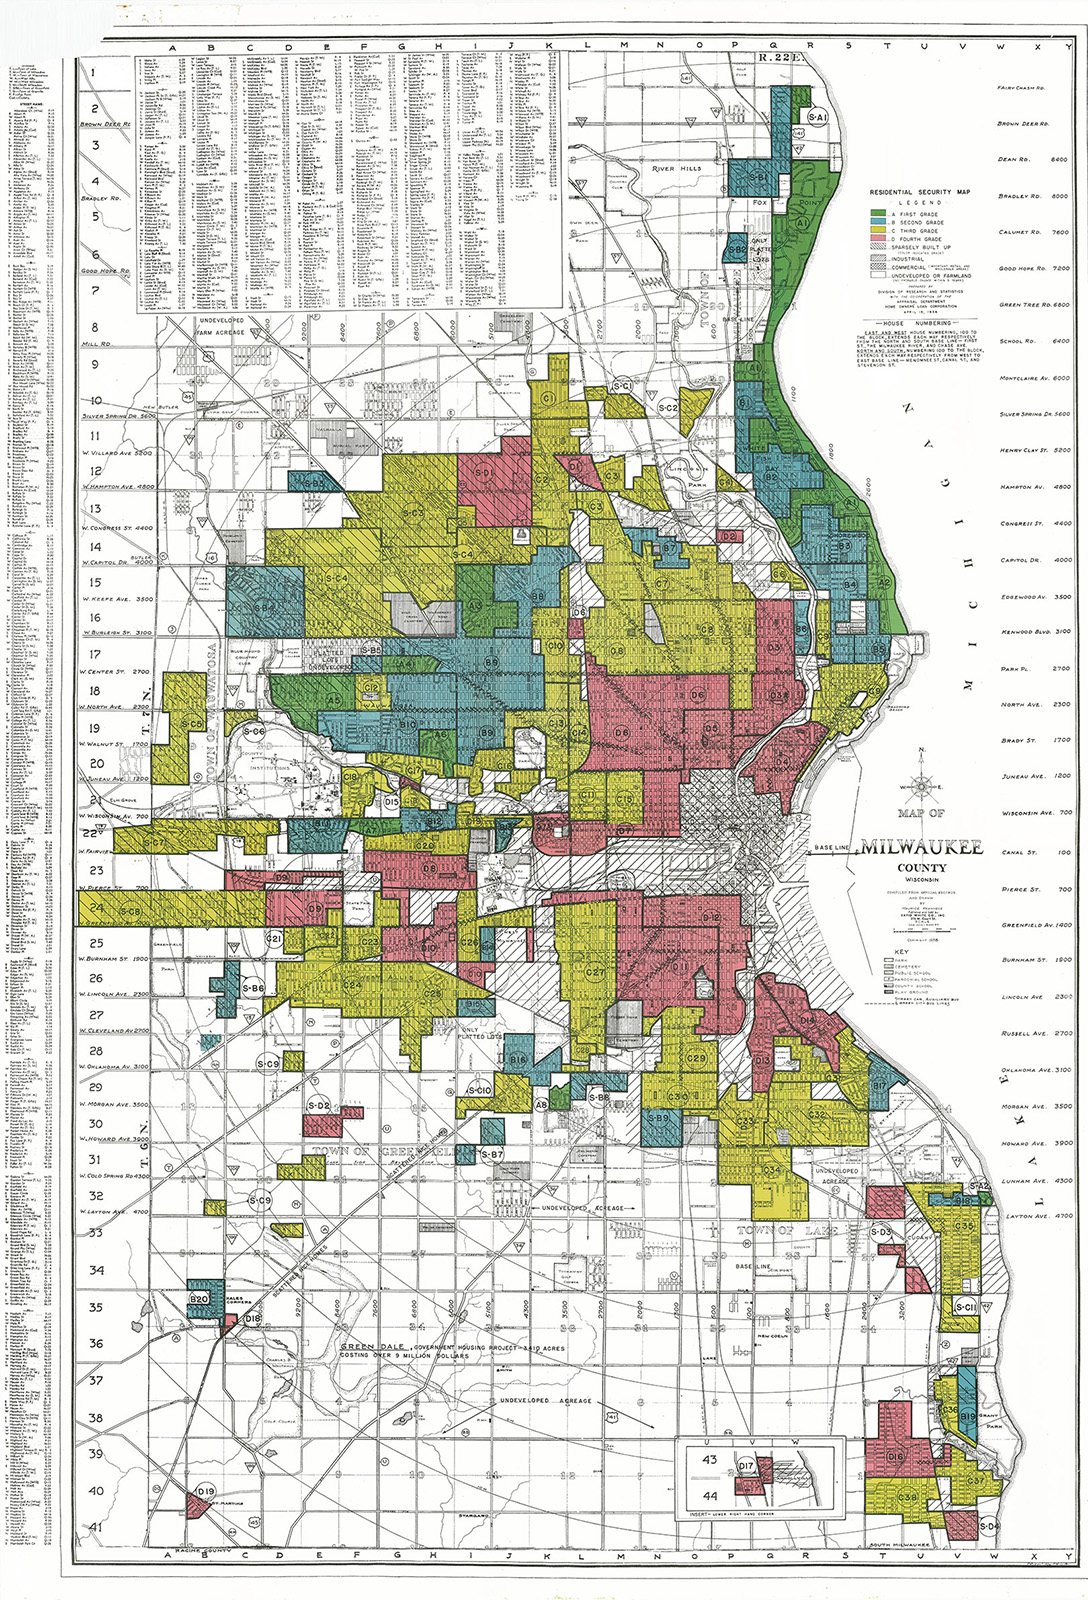 A 1938 map of Milwaukee with color-coding of neighborhoods in red, yellow, blue and green.